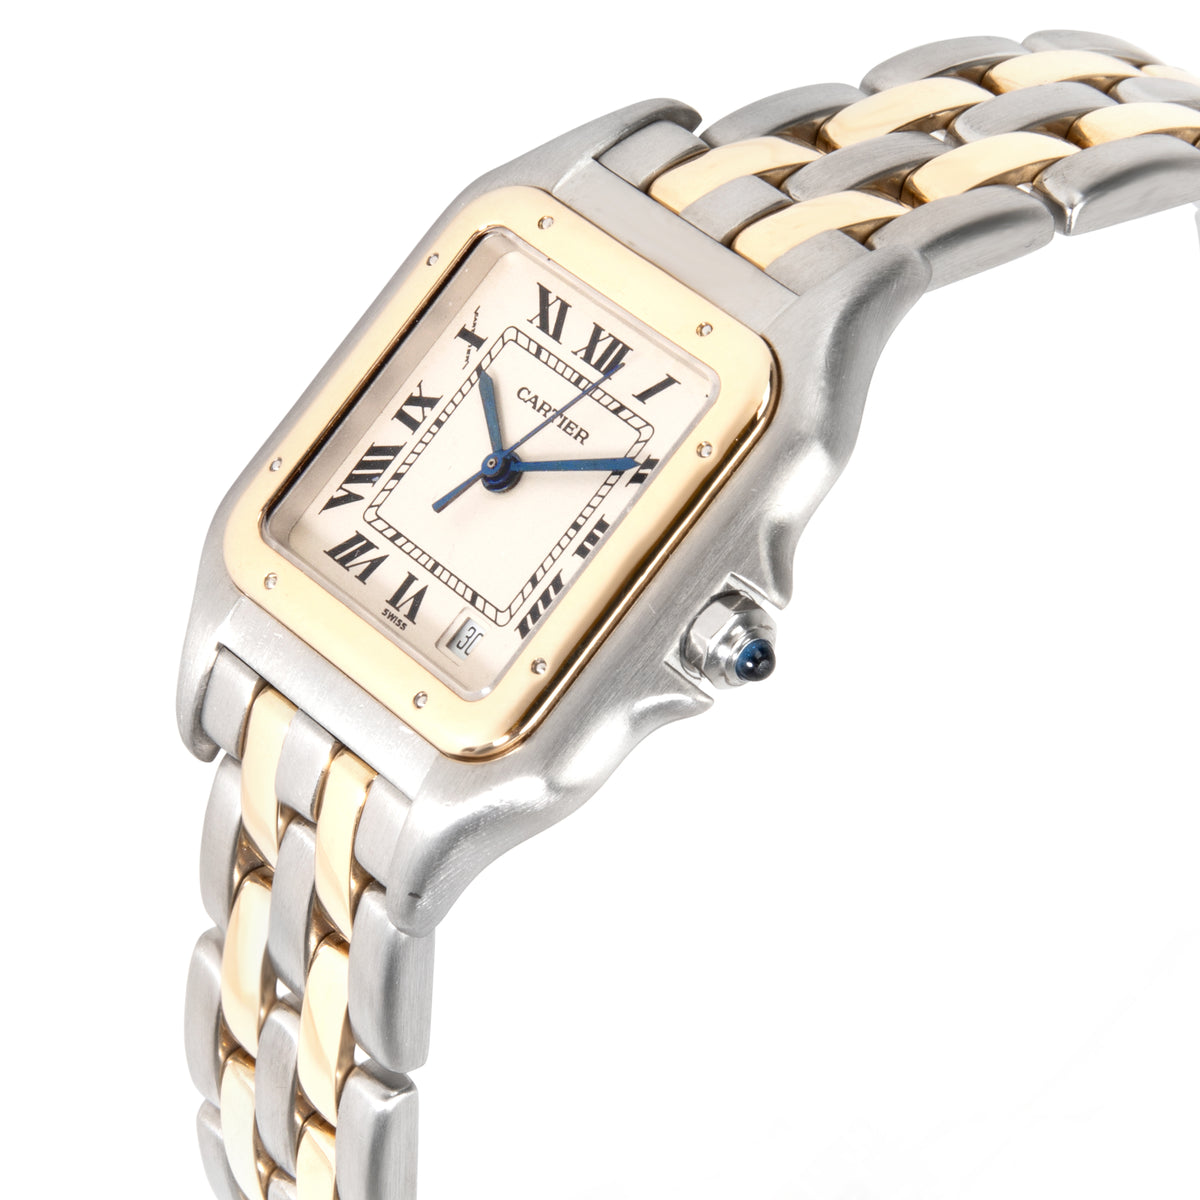 Cartier Panther 183949 Unisex Watch in 18kt Stainless Steel/Yellow Gold